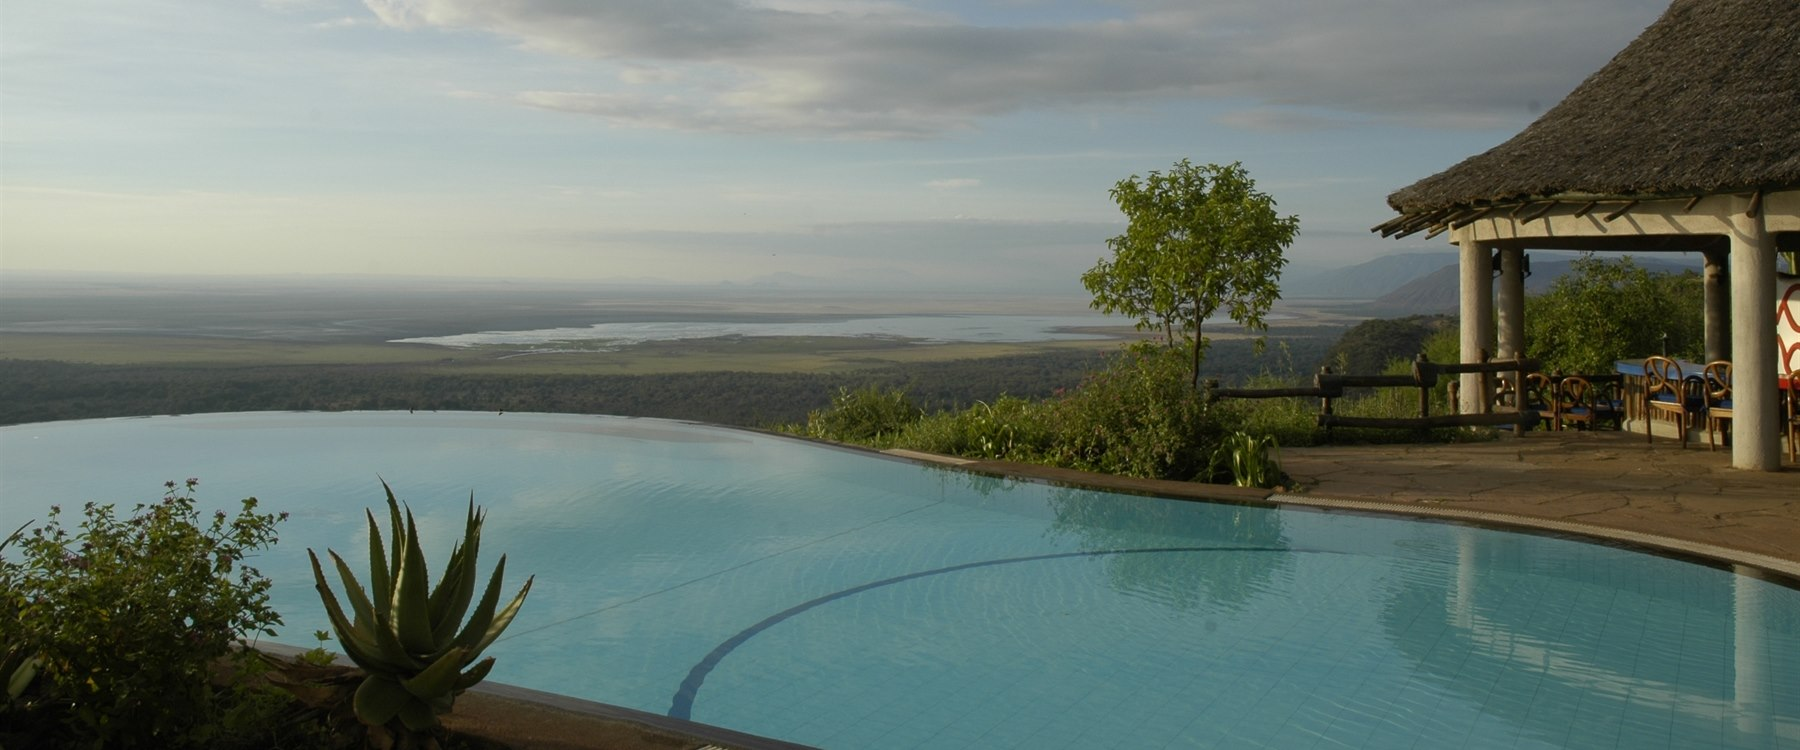 Pool area at Lake Manyara Serena Safari Lodge